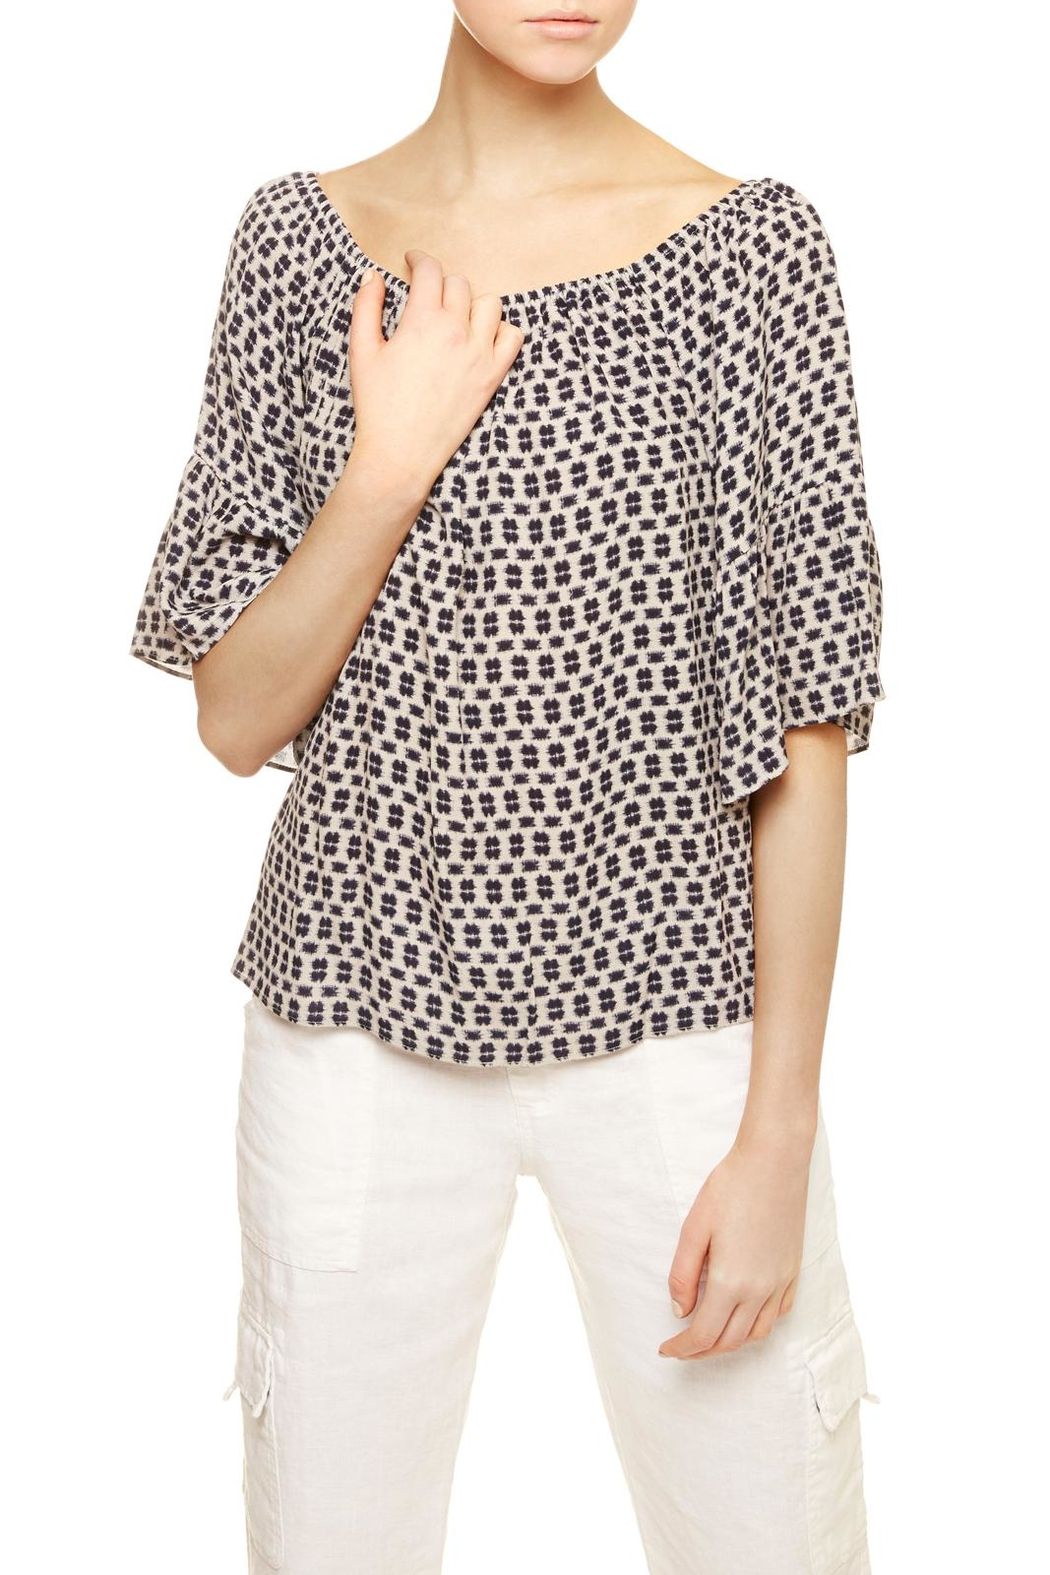 Sanctuary Bell-Sleeved Top - Front Full Image